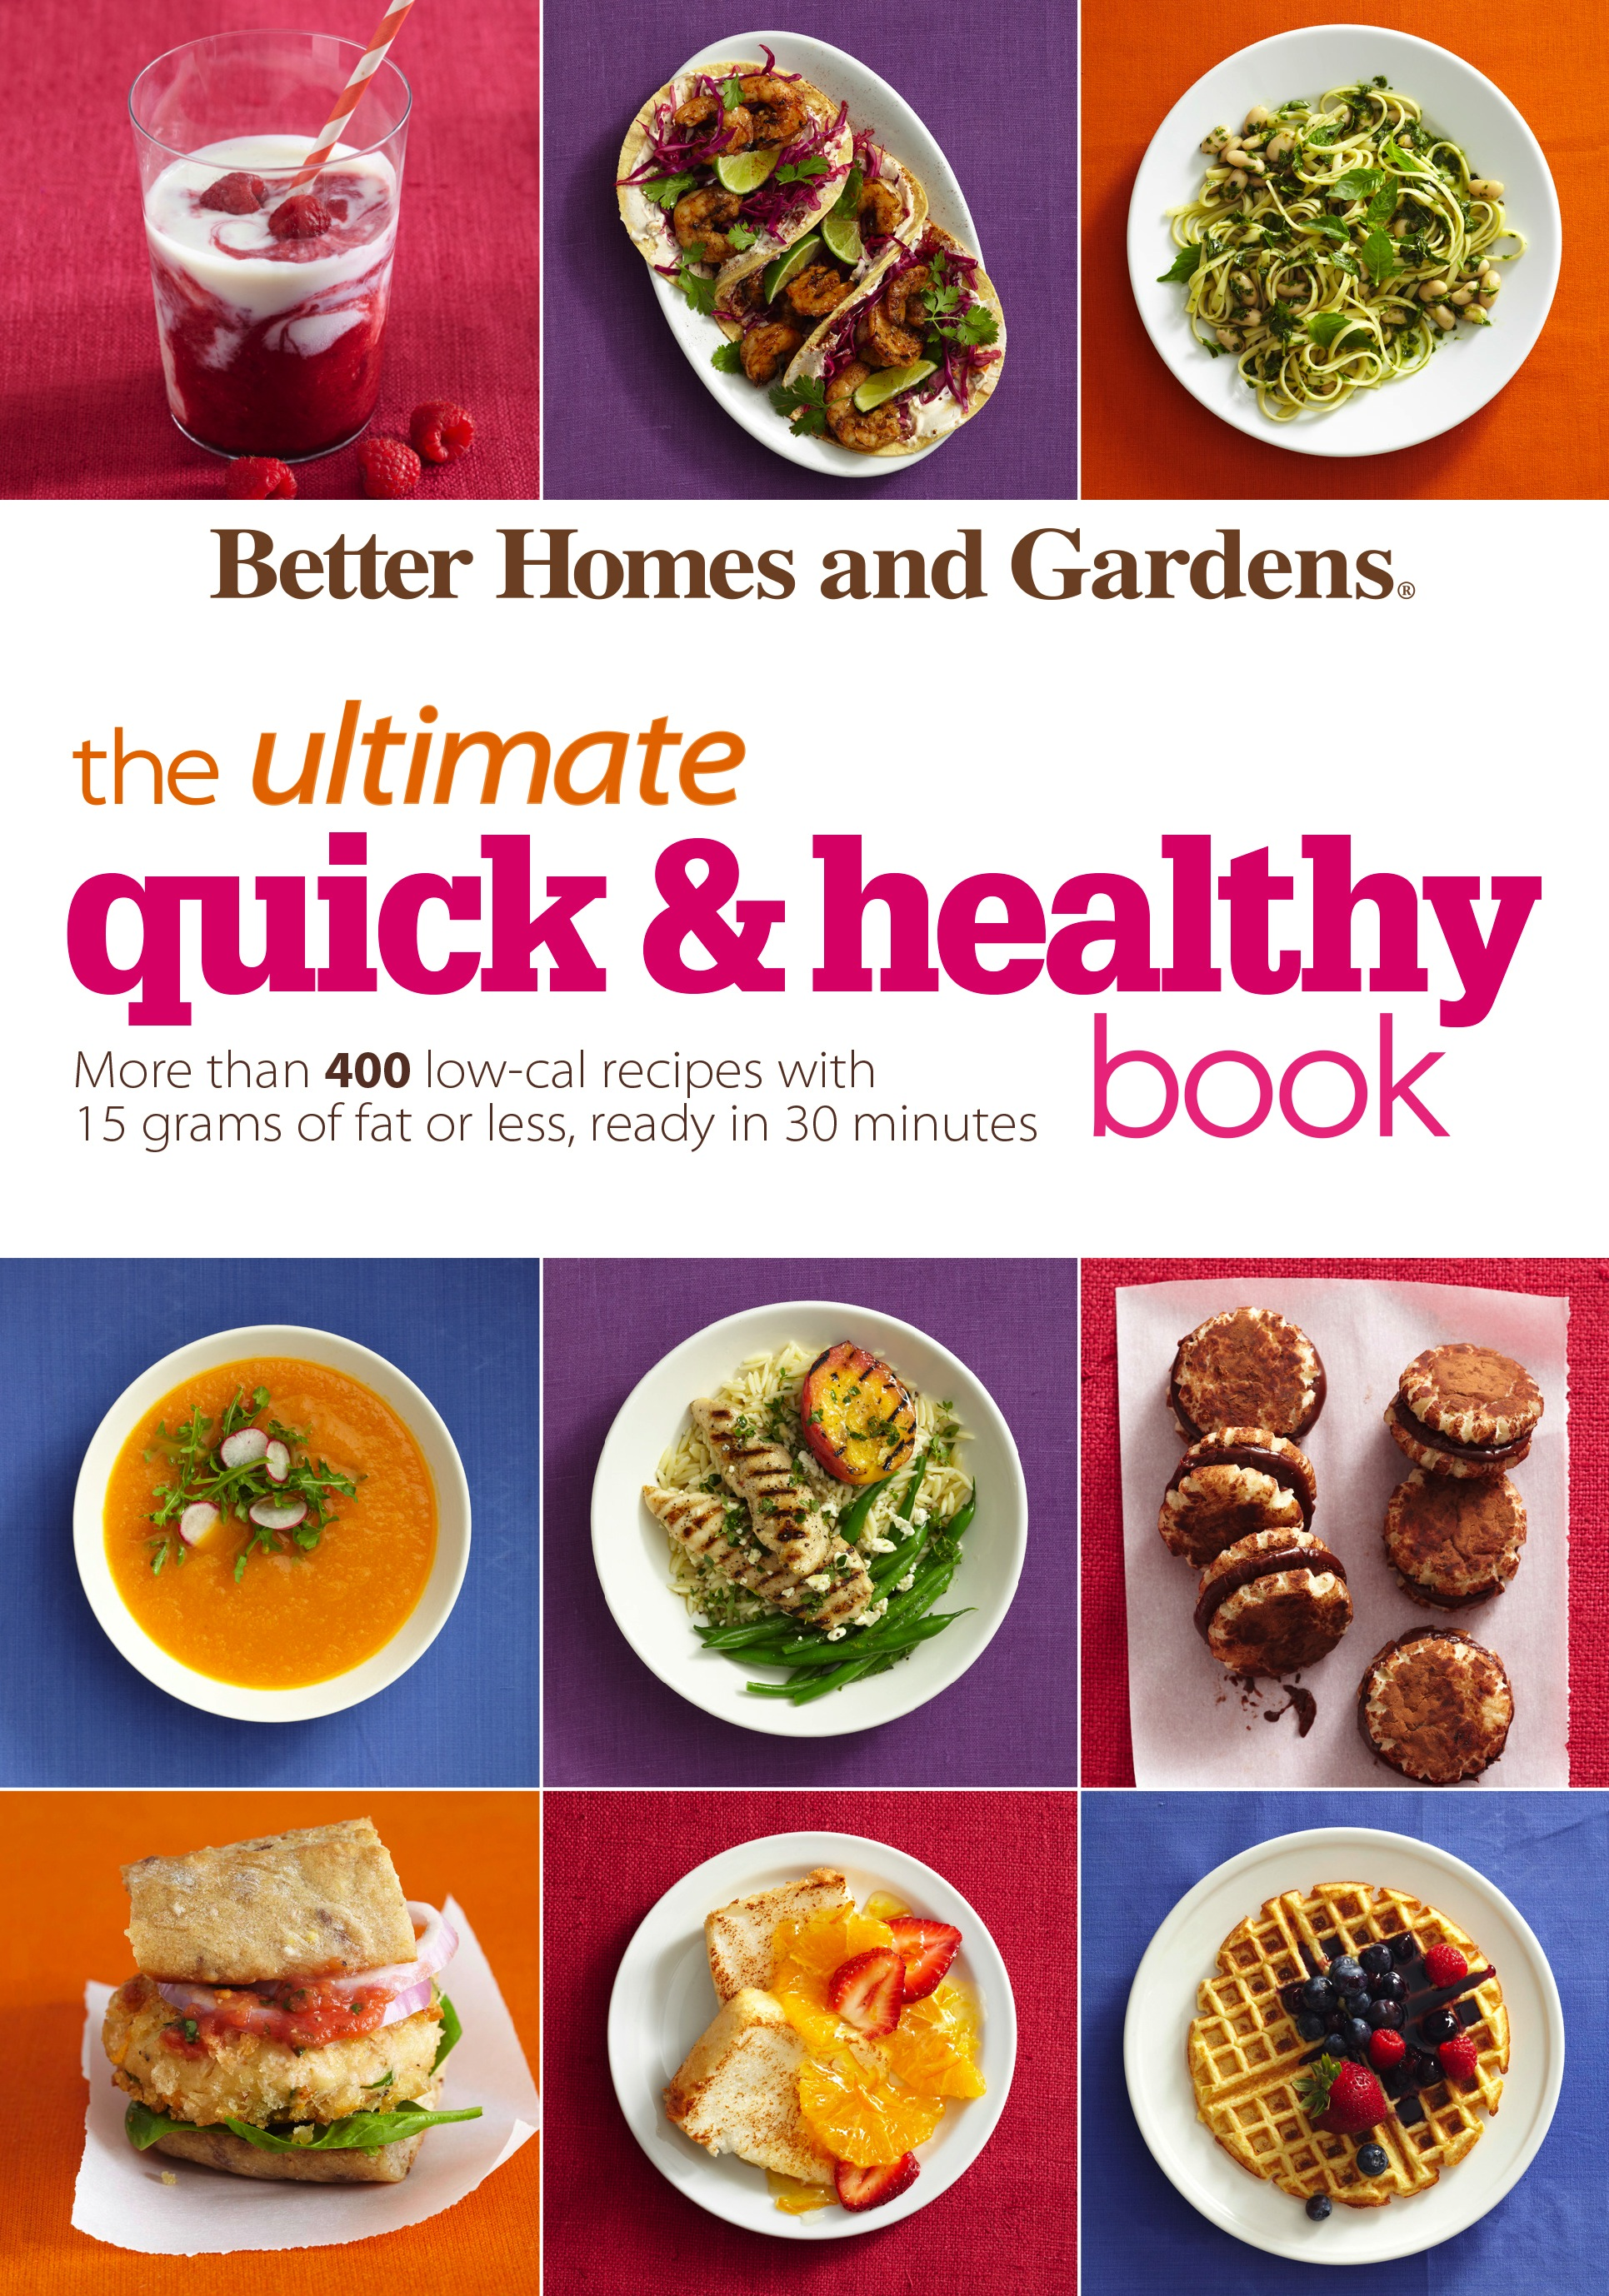 Better Homes and Gardens The Ultimate Quick & Healthy Book More Than 400 Low-Cal Recipes with 15 Grams of Fat or Less, Ready in 30 Minutes